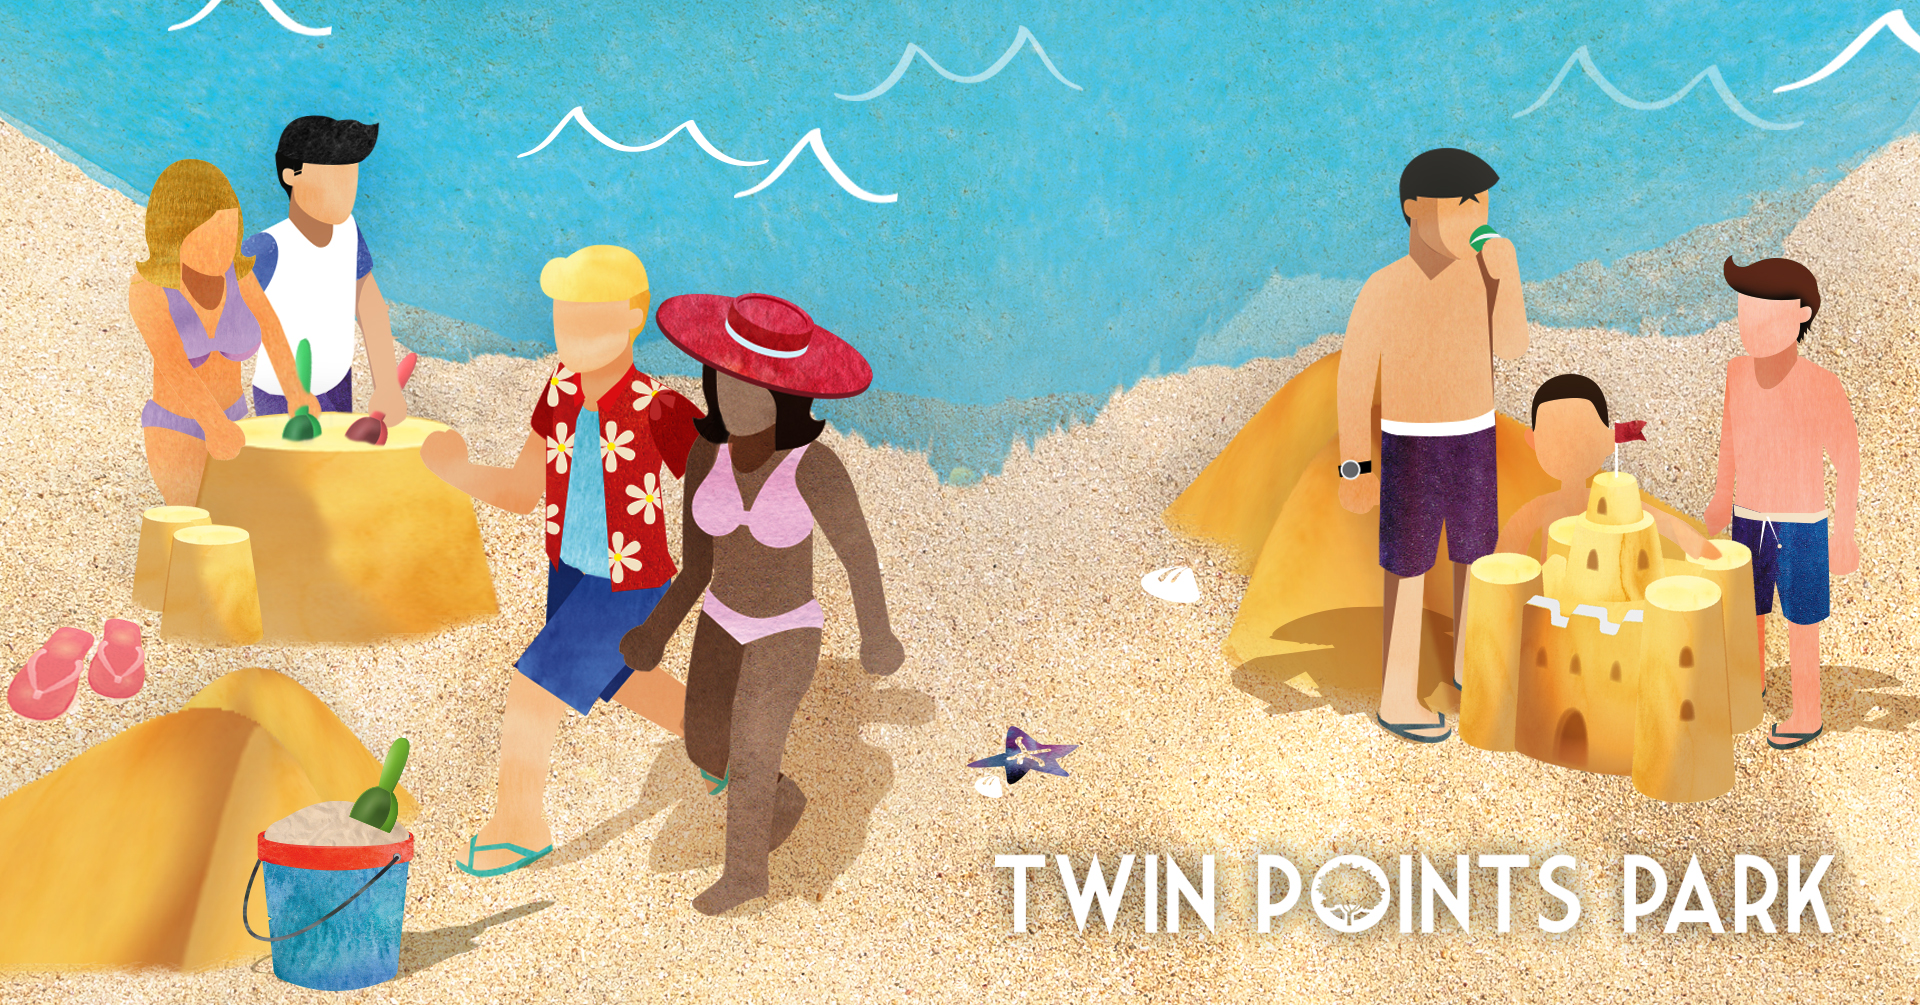 Twin Points Park | TrWD